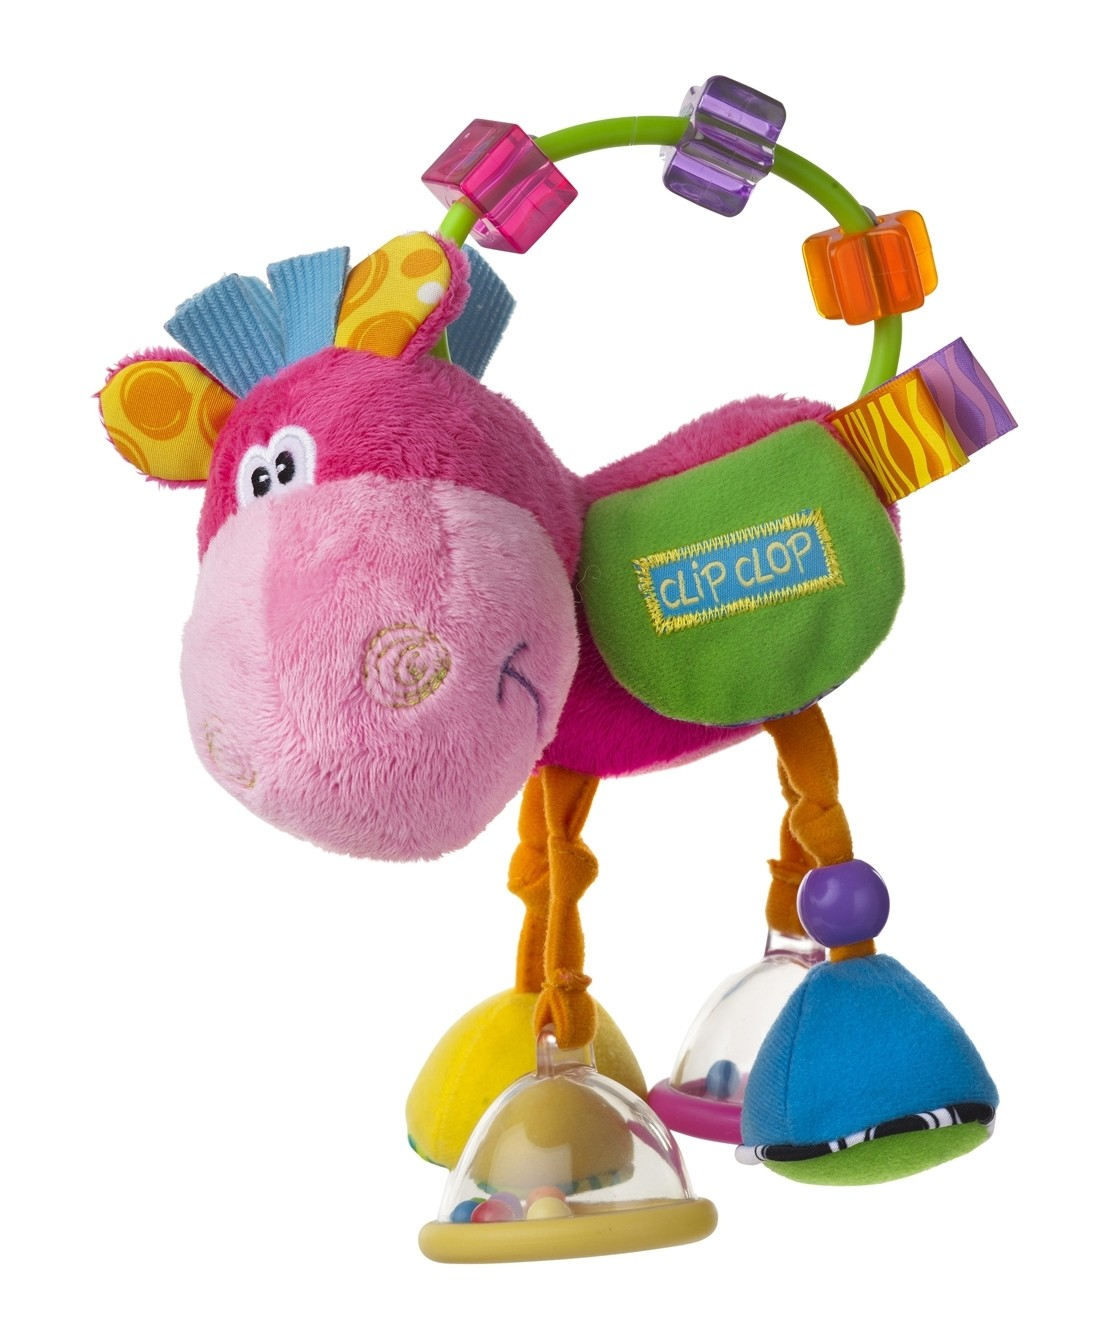 Playgro Clip Clop Activity Rattle - Pink